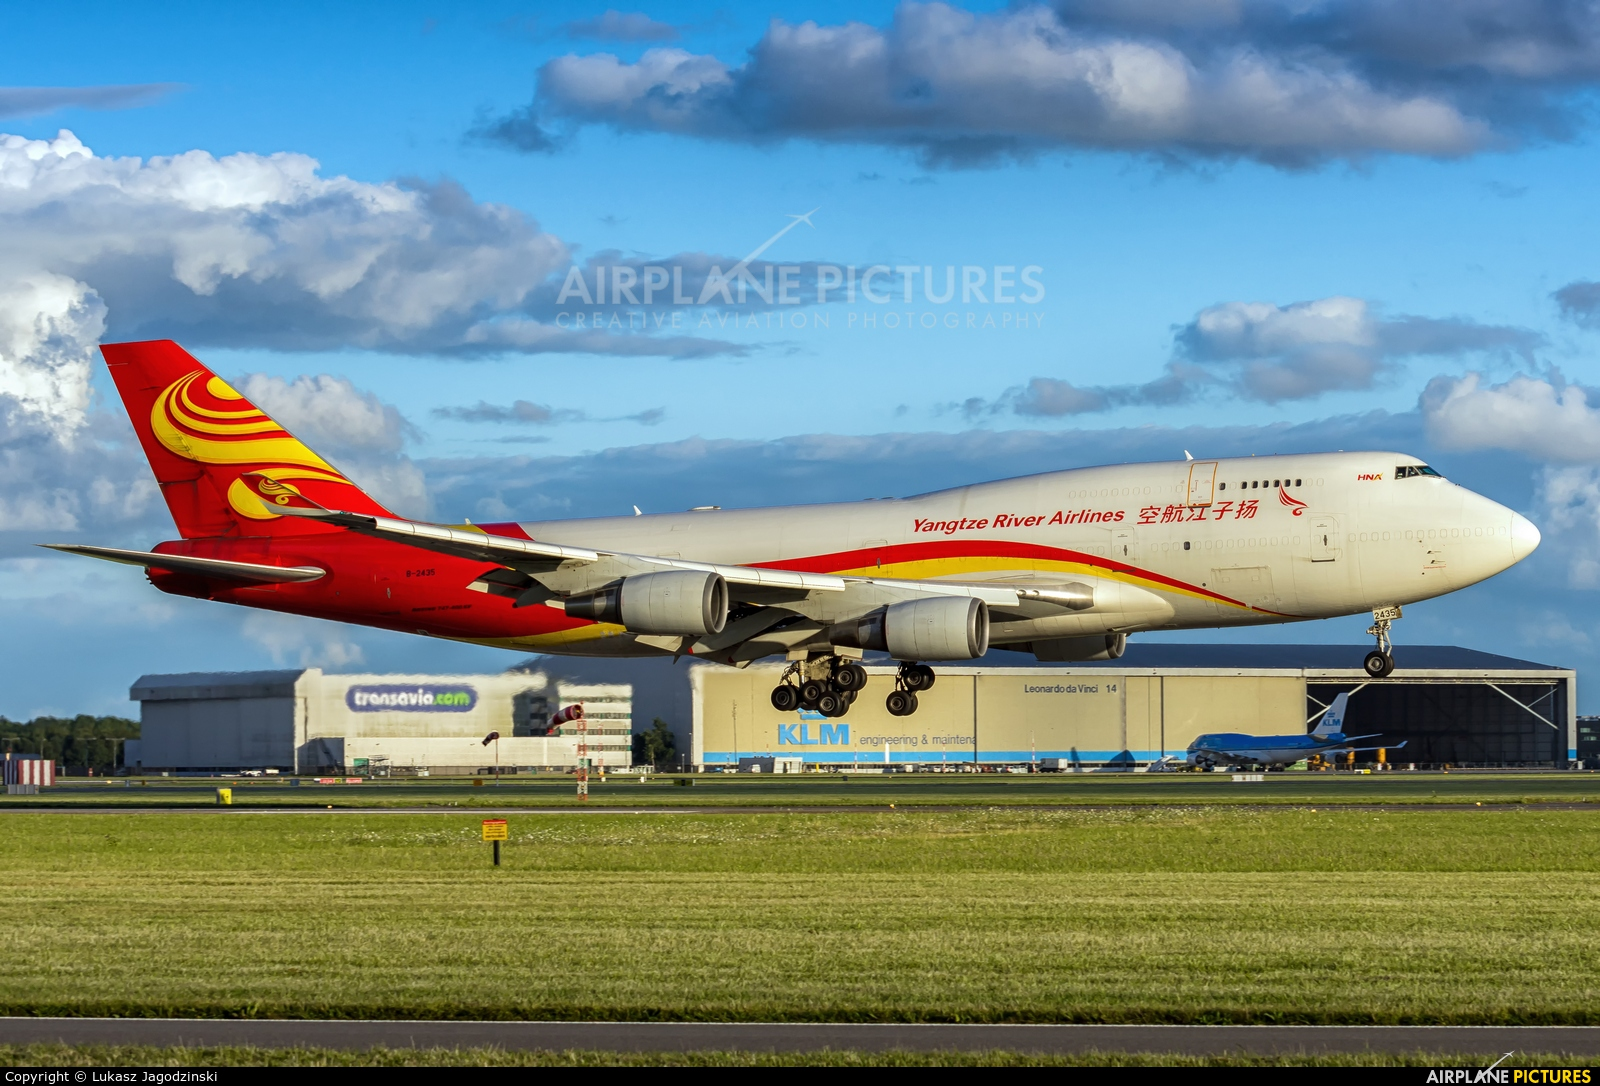 Yangtze River Airlines B-2435 aircraft at Amsterdam - Schiphol